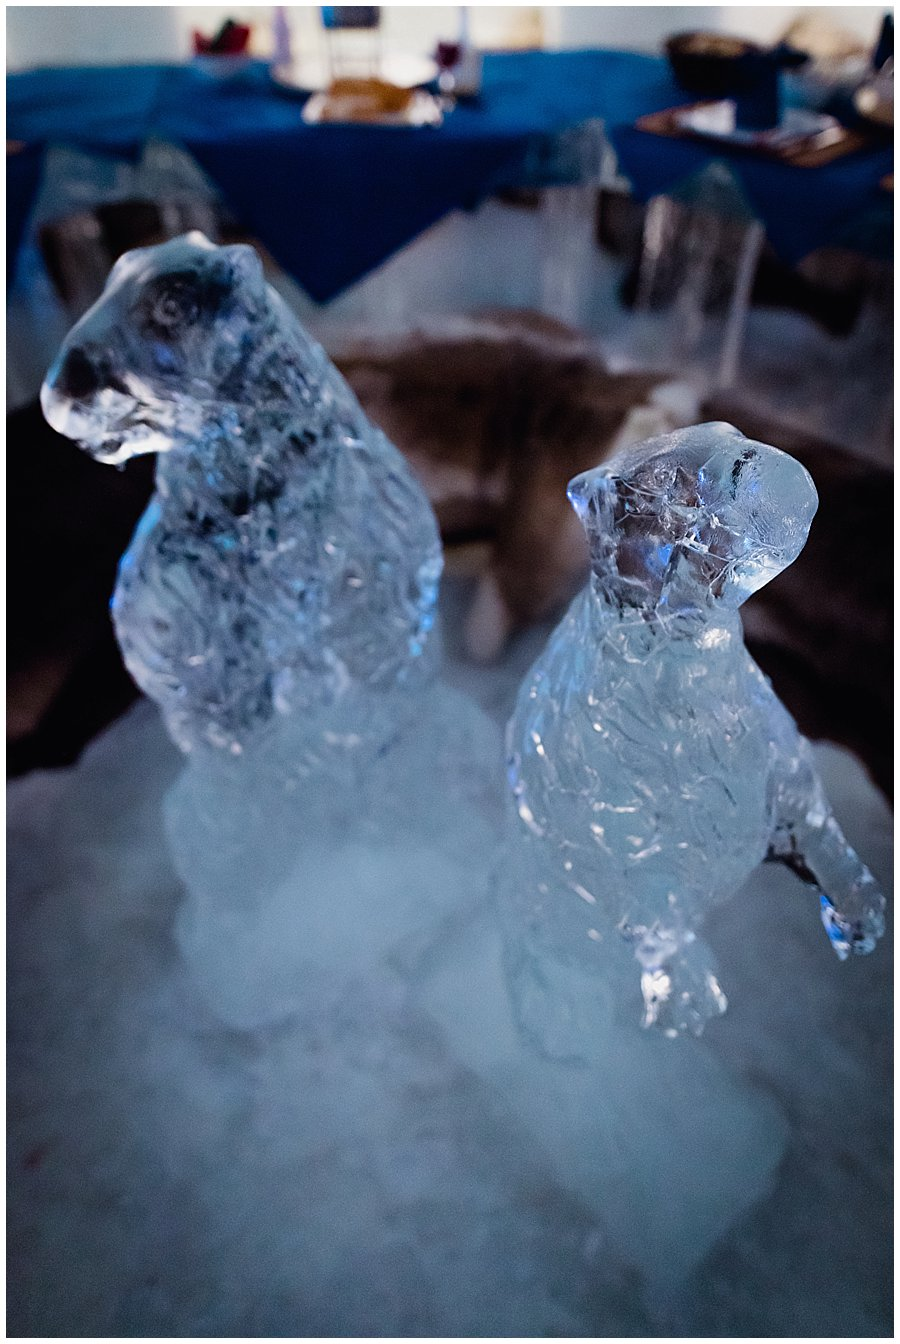 Animals carved from ice as a centre piece in the middle of the ice table